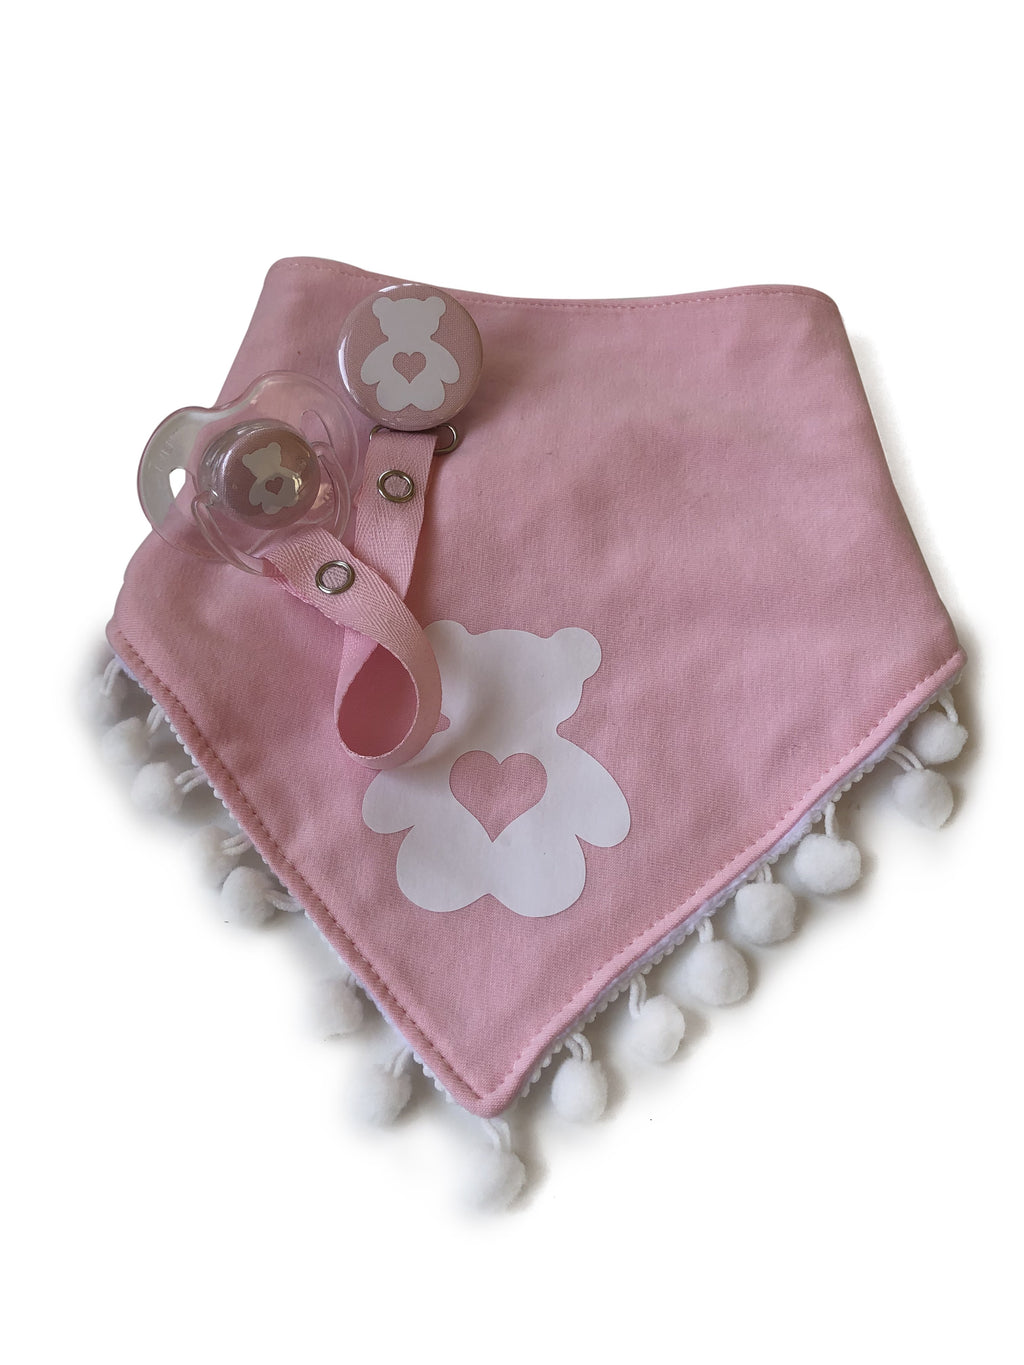 White Teddy bear heart, Pink Bib & Pacifier Clip with Matching Pacifier Gift Set boy girl